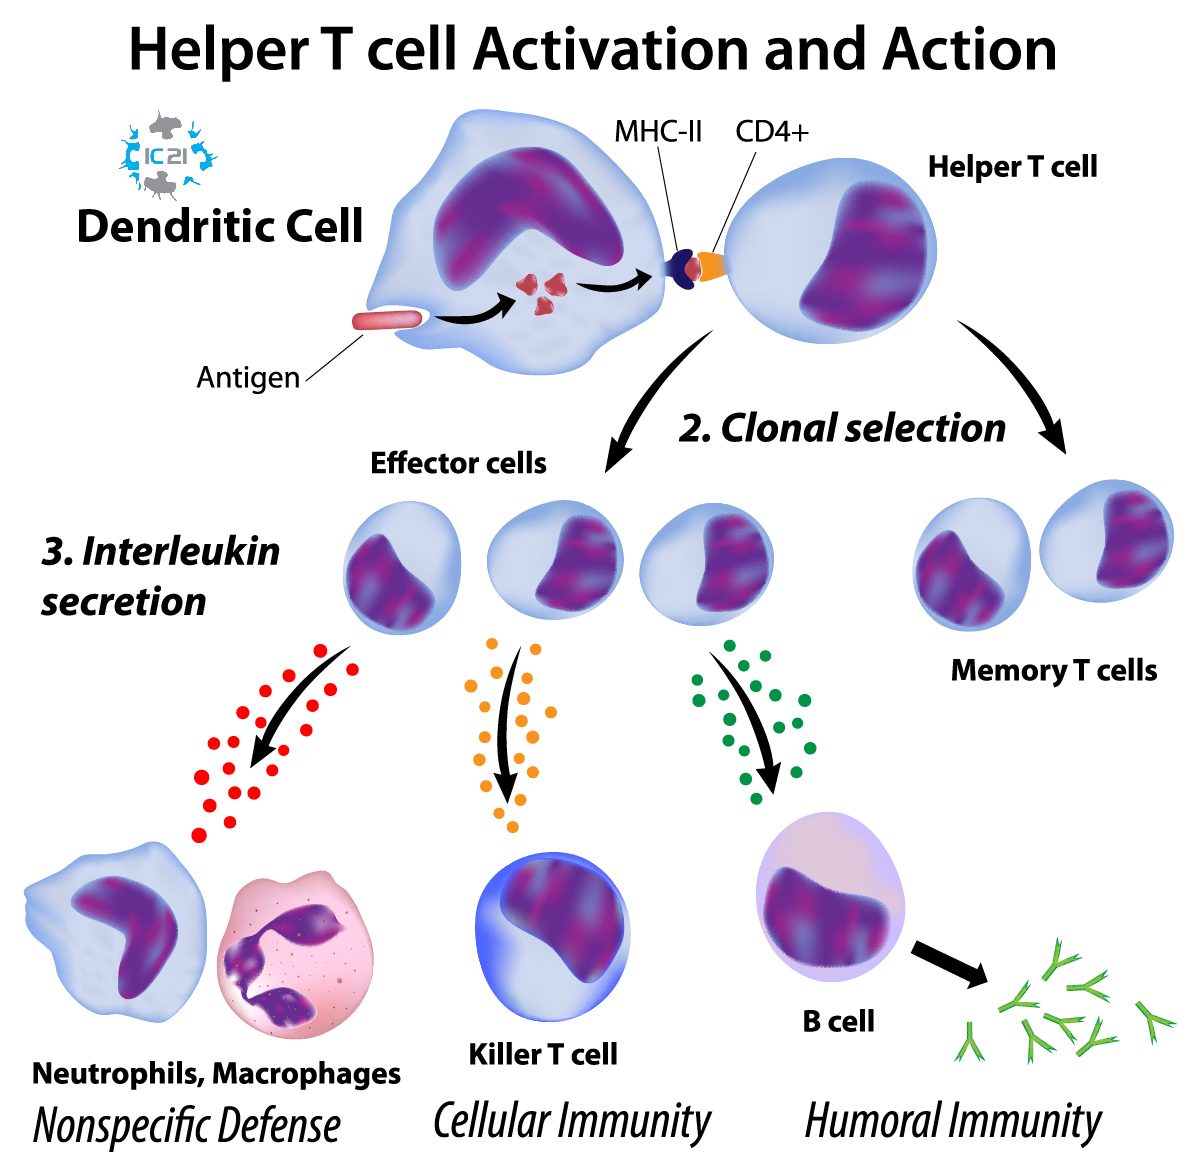 dendritic cell therapy, DC vaccine, dendritic cells, monocyte therapy, immune cell therapy, immune cells 21, alternative cancer treatment,